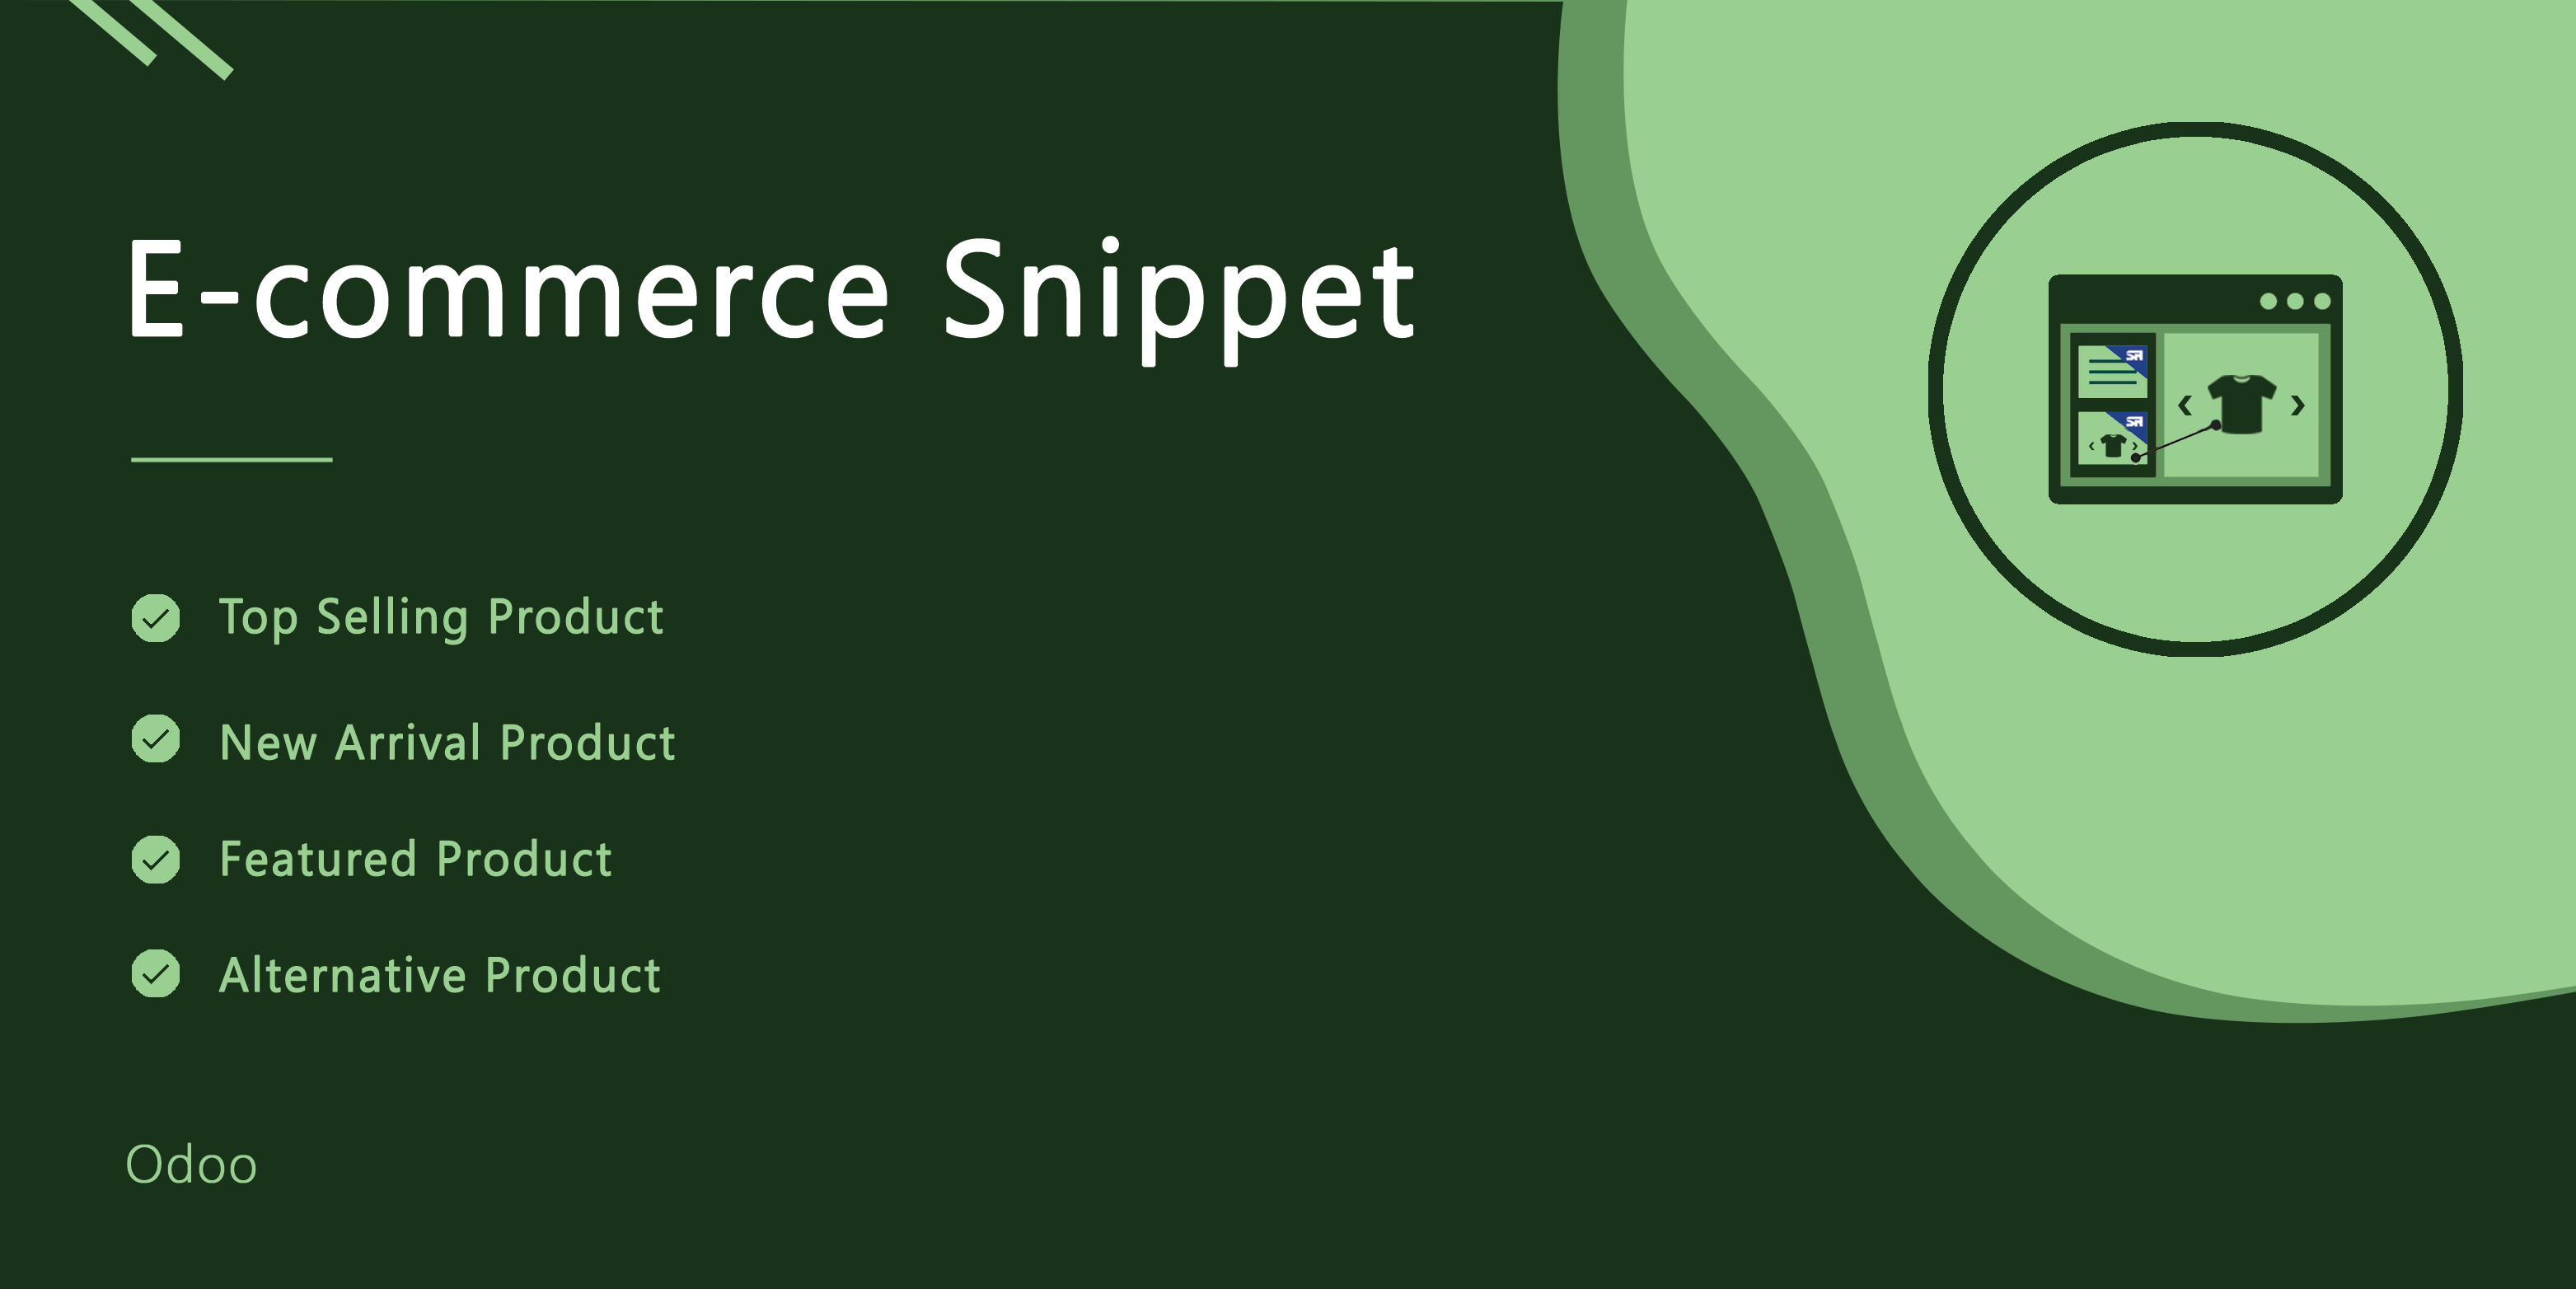 Ecommerce Snippet